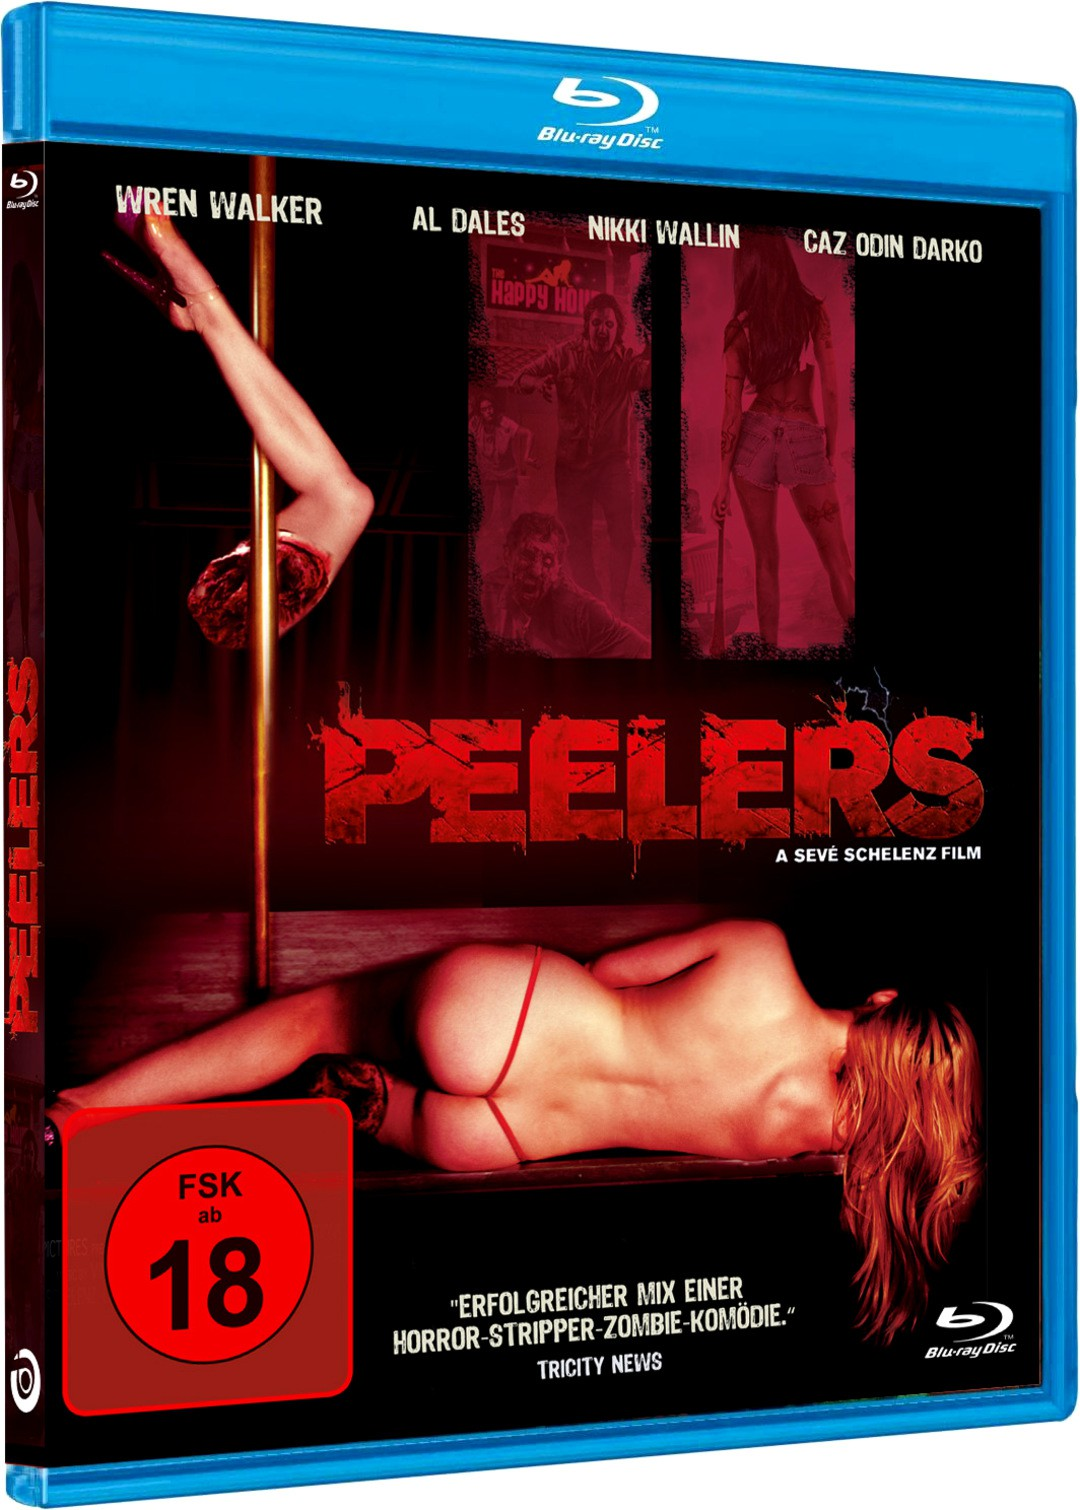 Peelers Trailer: Zombies vs. Stripperinnen - Bild 1 von 8